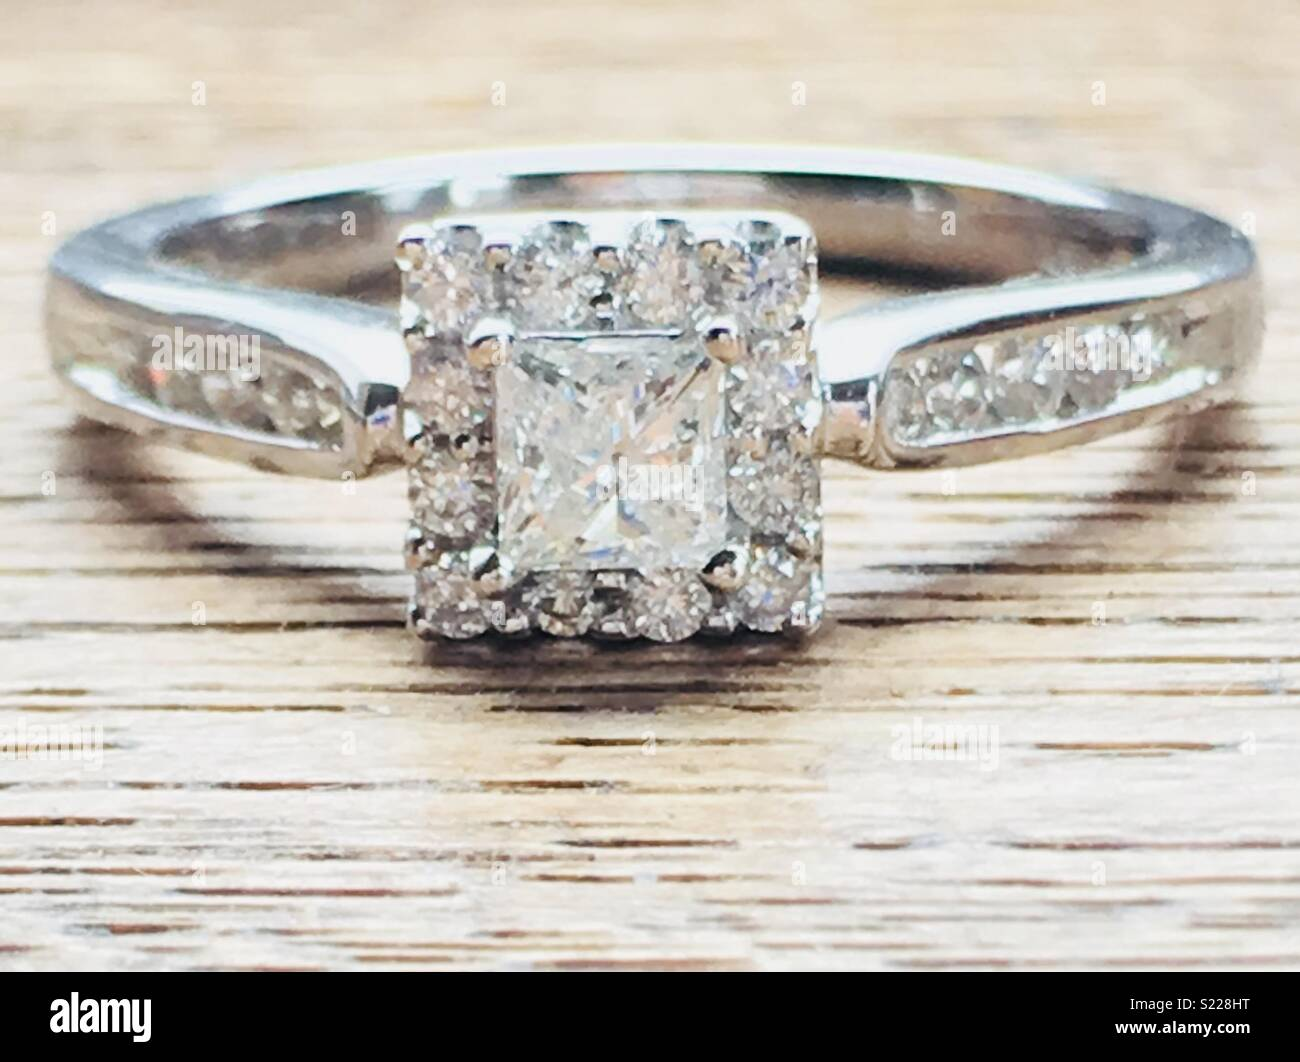 f862d4dfda6489 This elegant 18ct white gold ring is set with a sparkling princess cut  diamond solitaire surrounded by smaller twinkling diamonds.